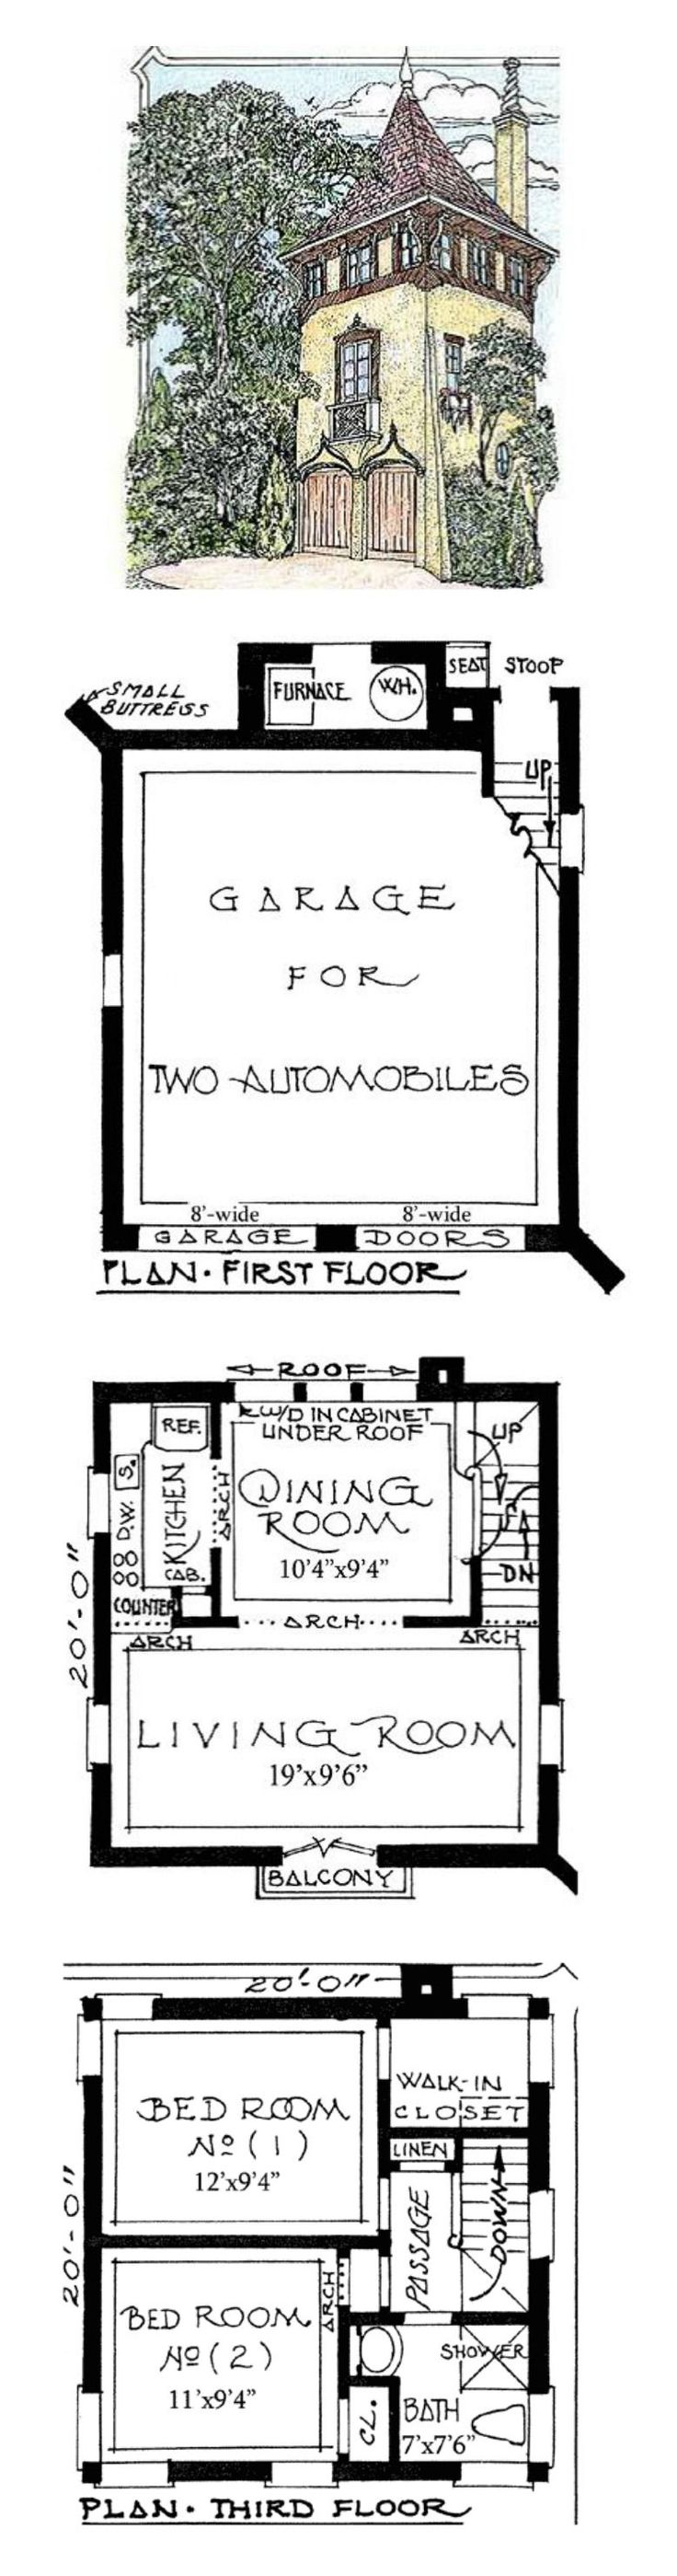 Architectural Designs ~ Romantic Carriage House Plans ~ It also could have Look Out Tower design applied to the exterior. ~